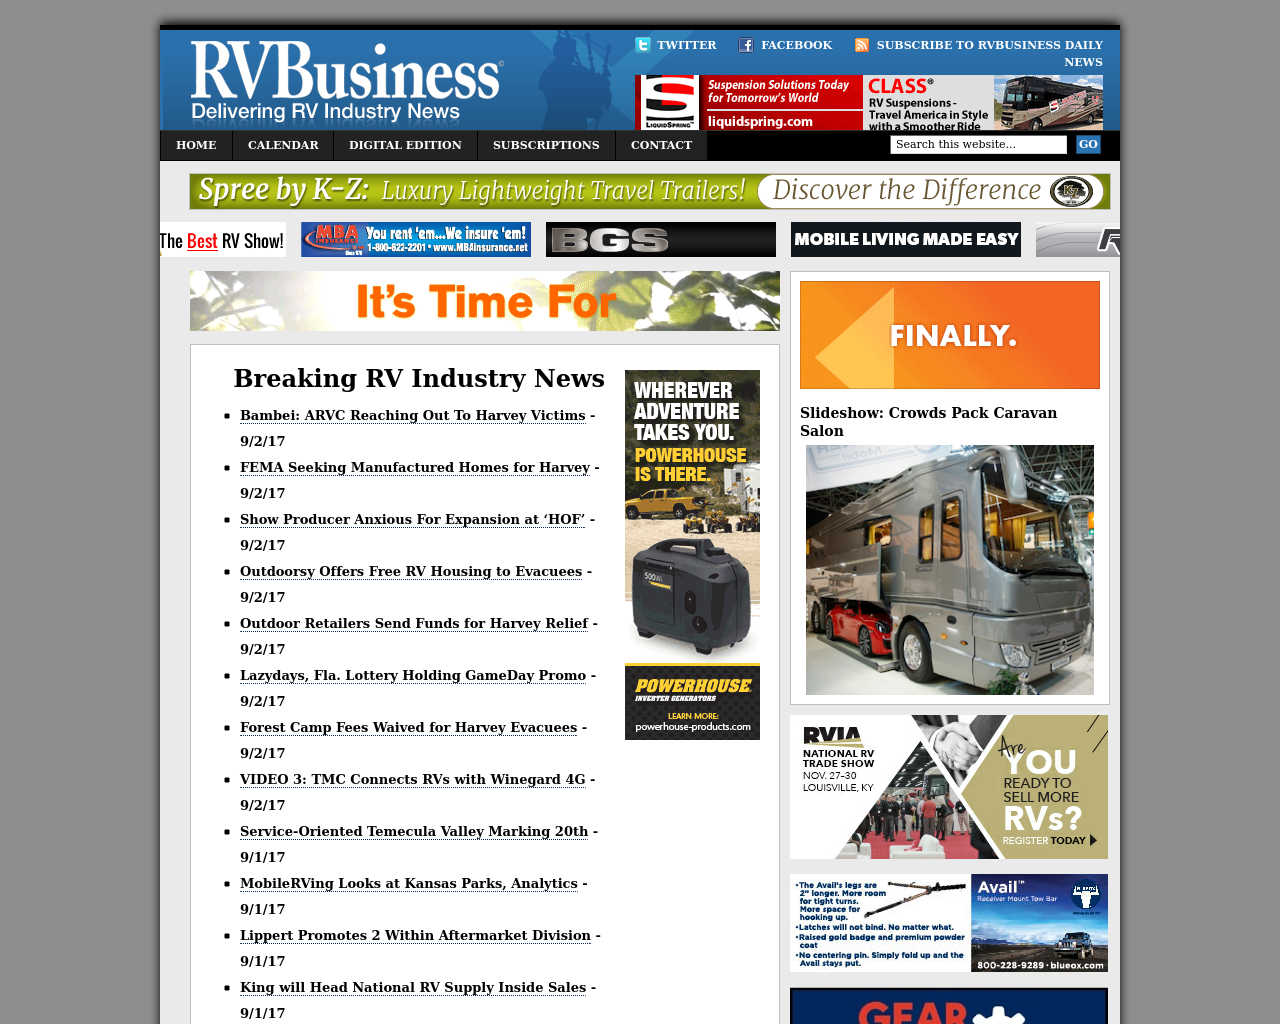 RVBusiness-Advertising-Reviews-Pricing